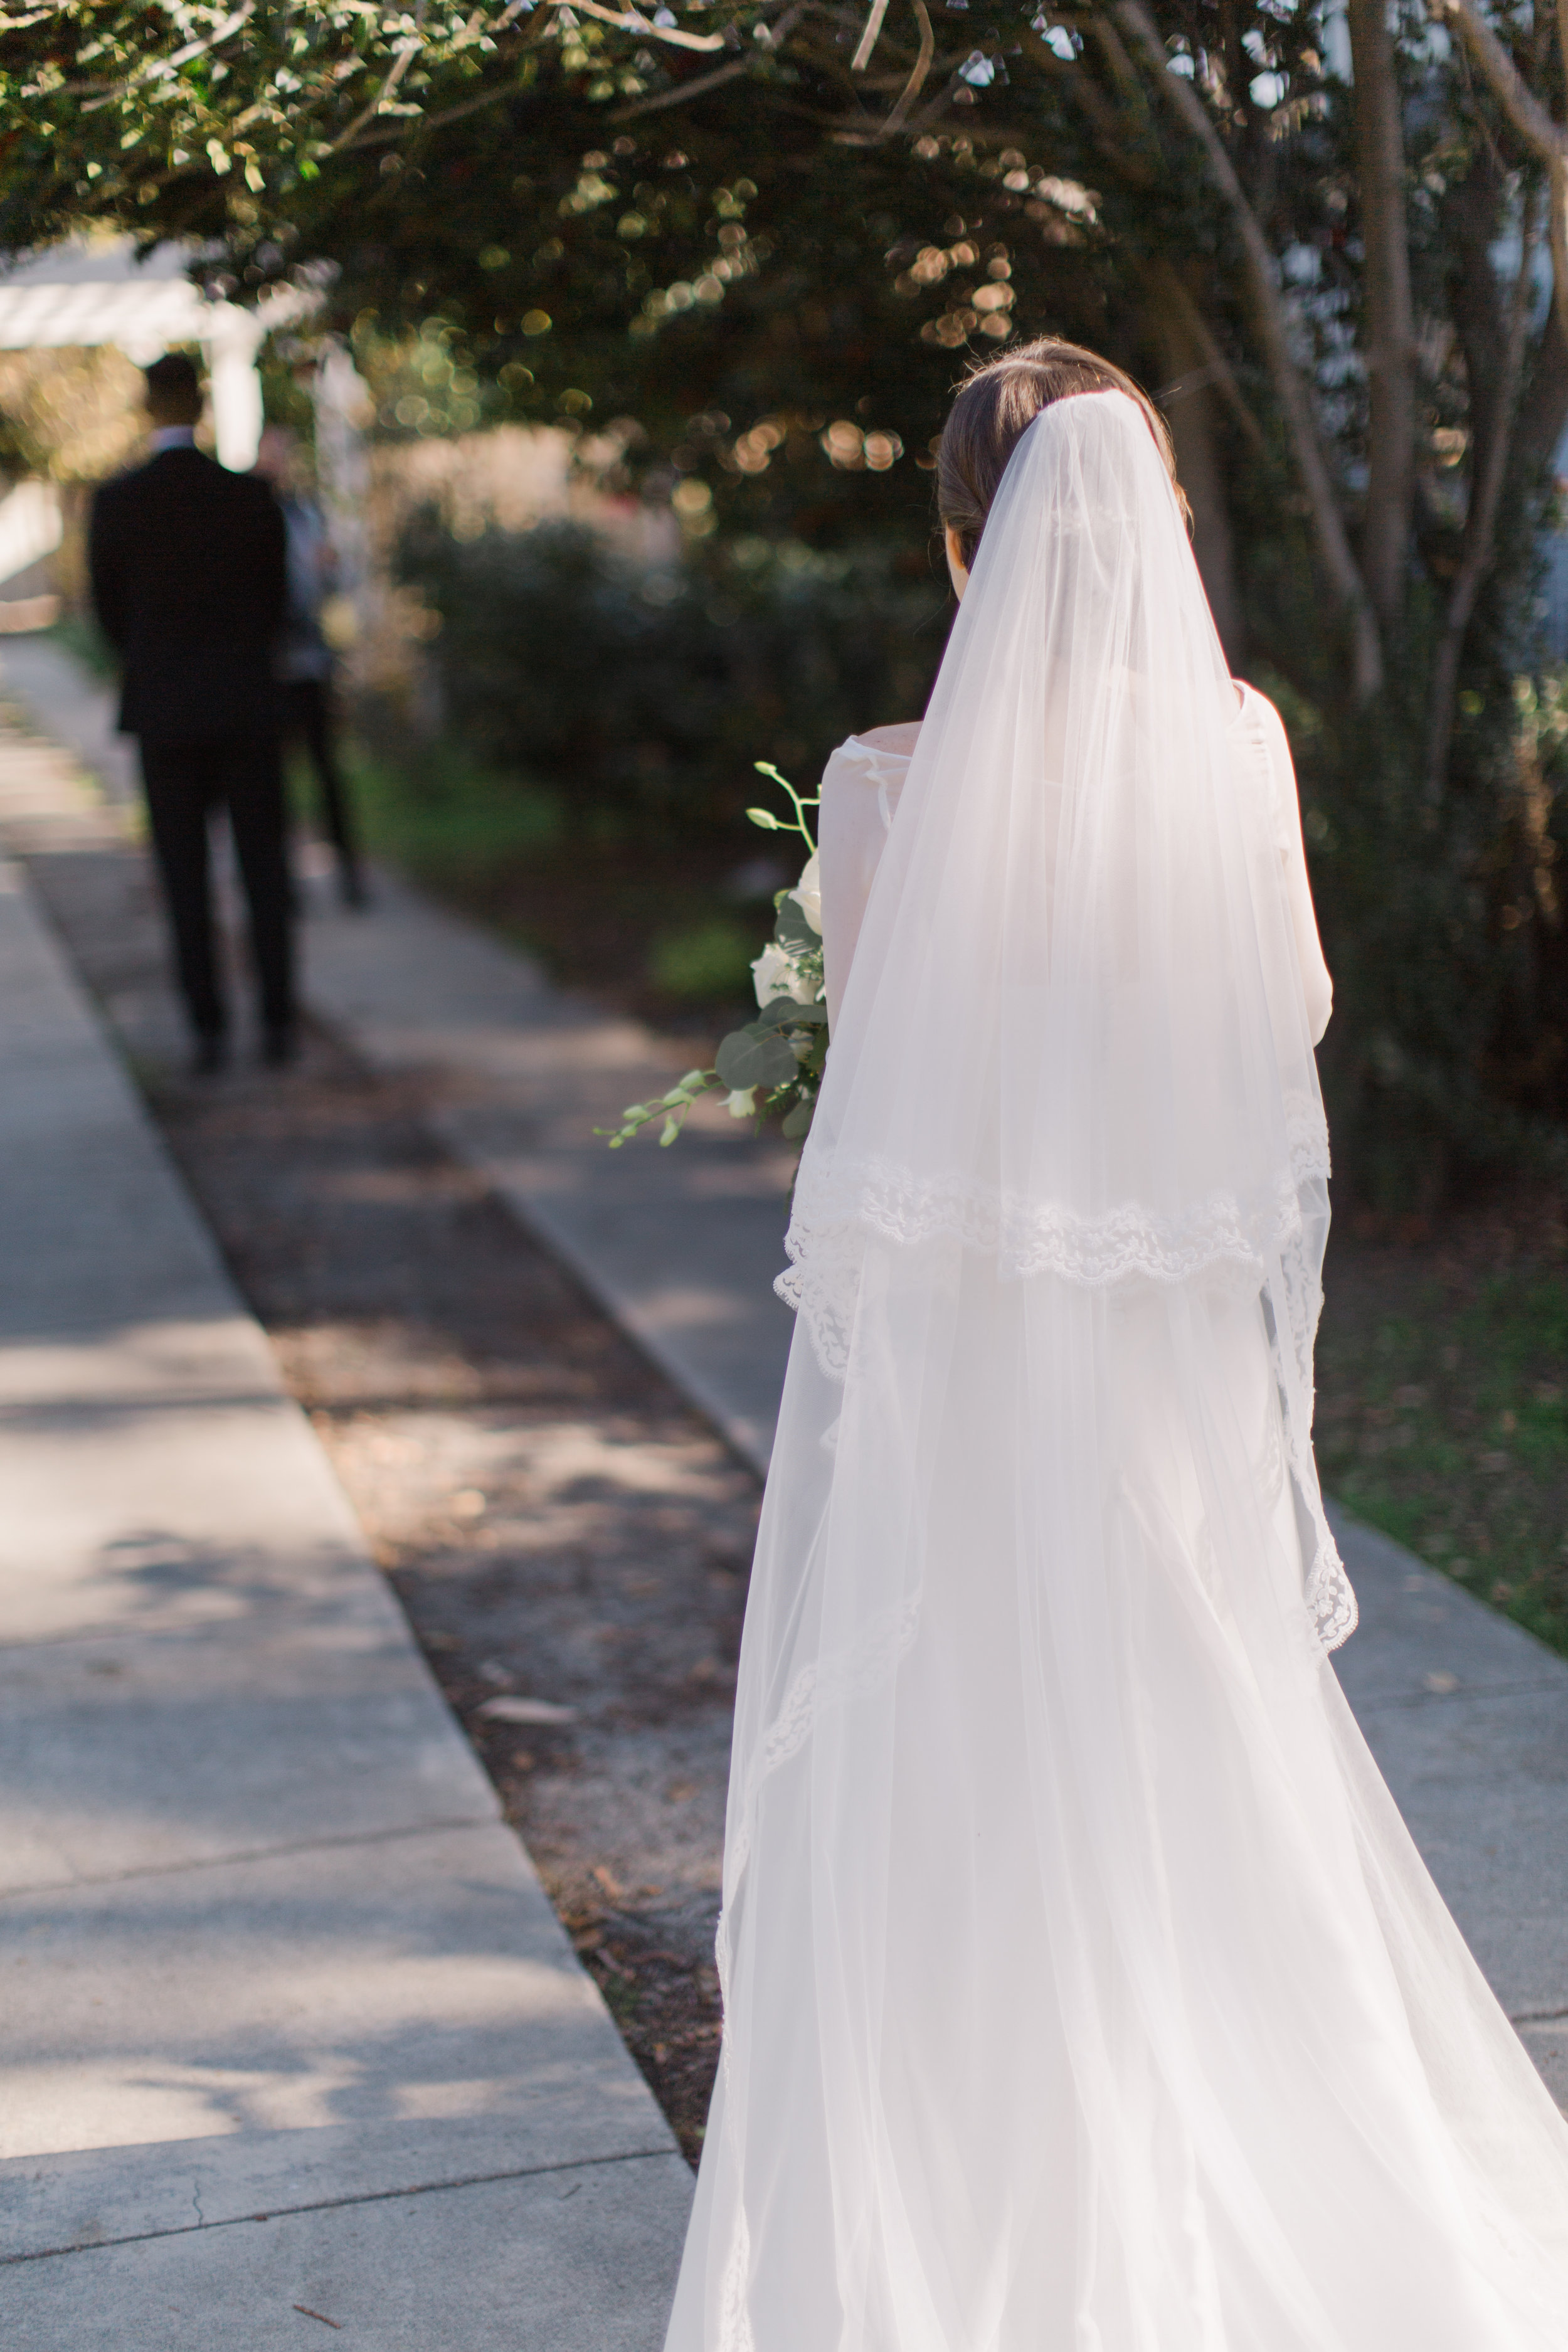 Southern-California-Wedding-Katie-Steven-Amy-And-Darren-Photography-39.jpg